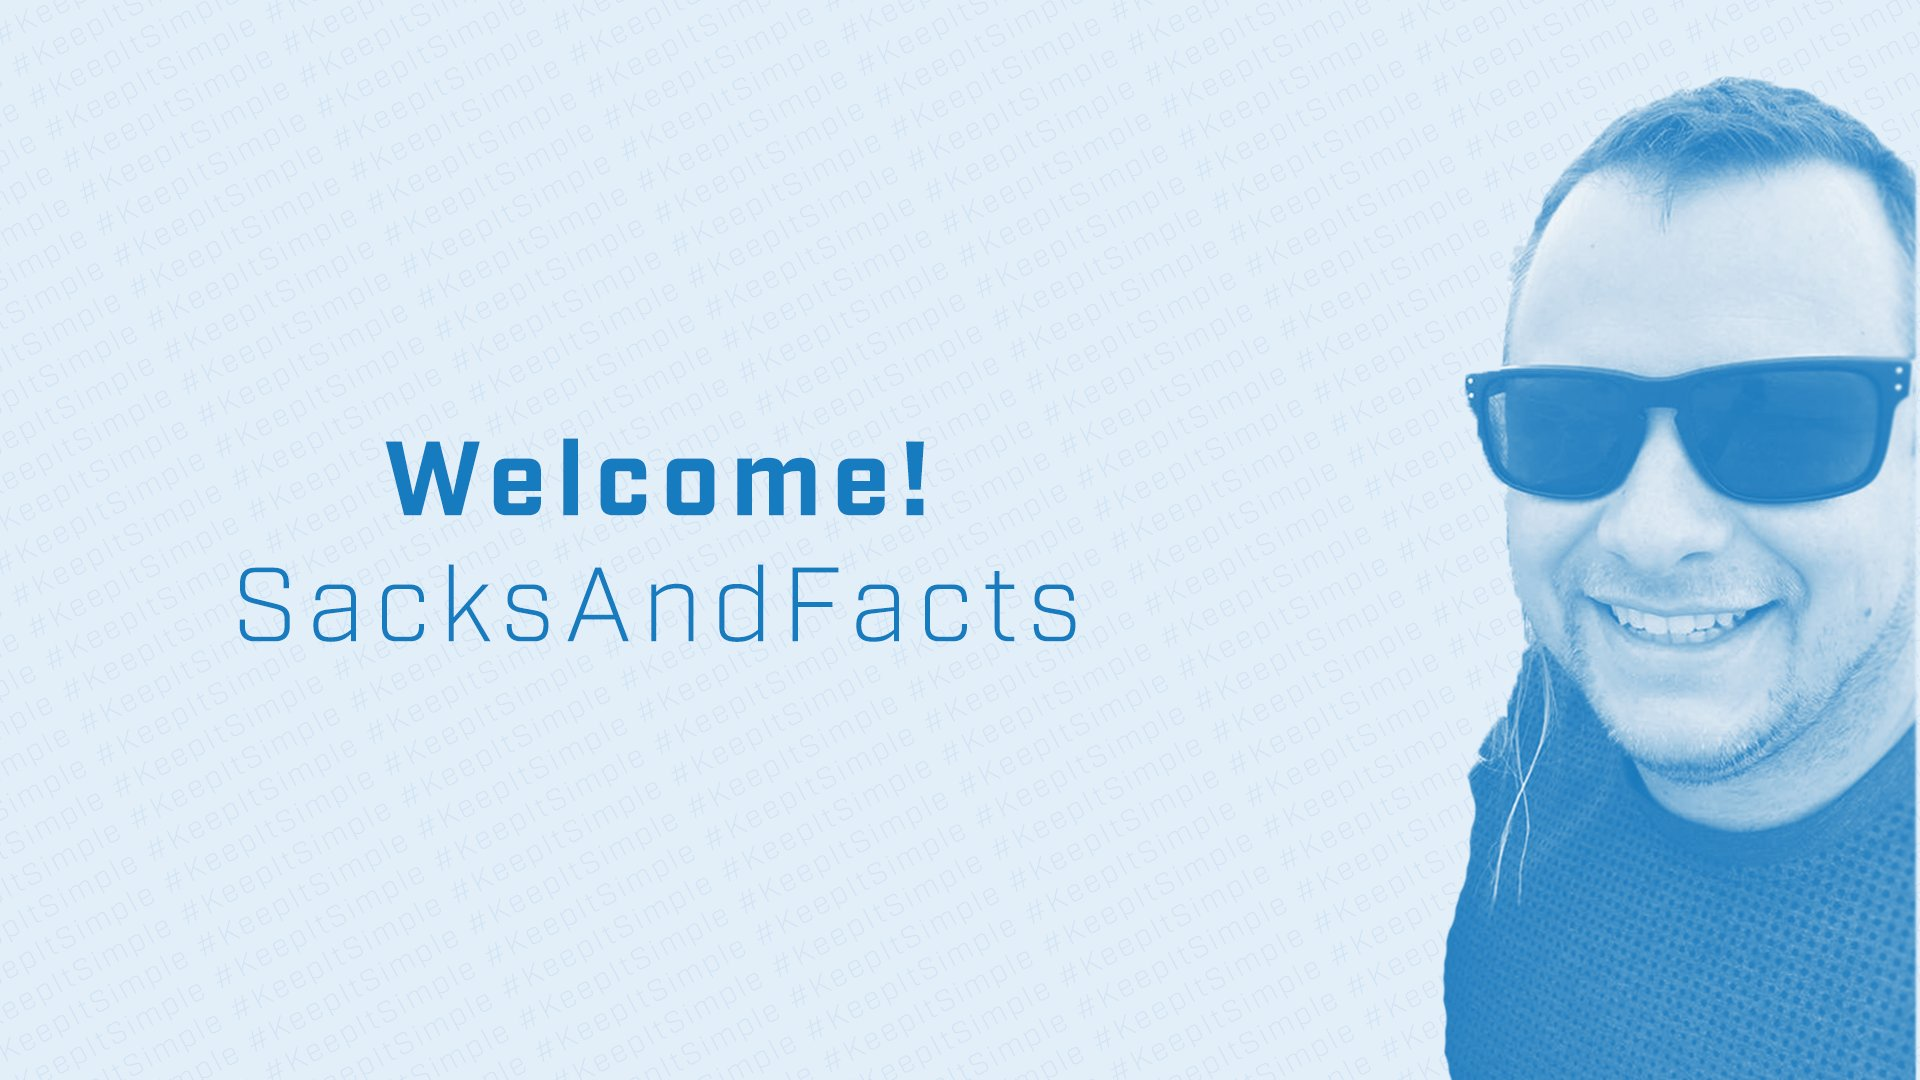 Welcome SacksAndFacts to the Simplicity Stream Team